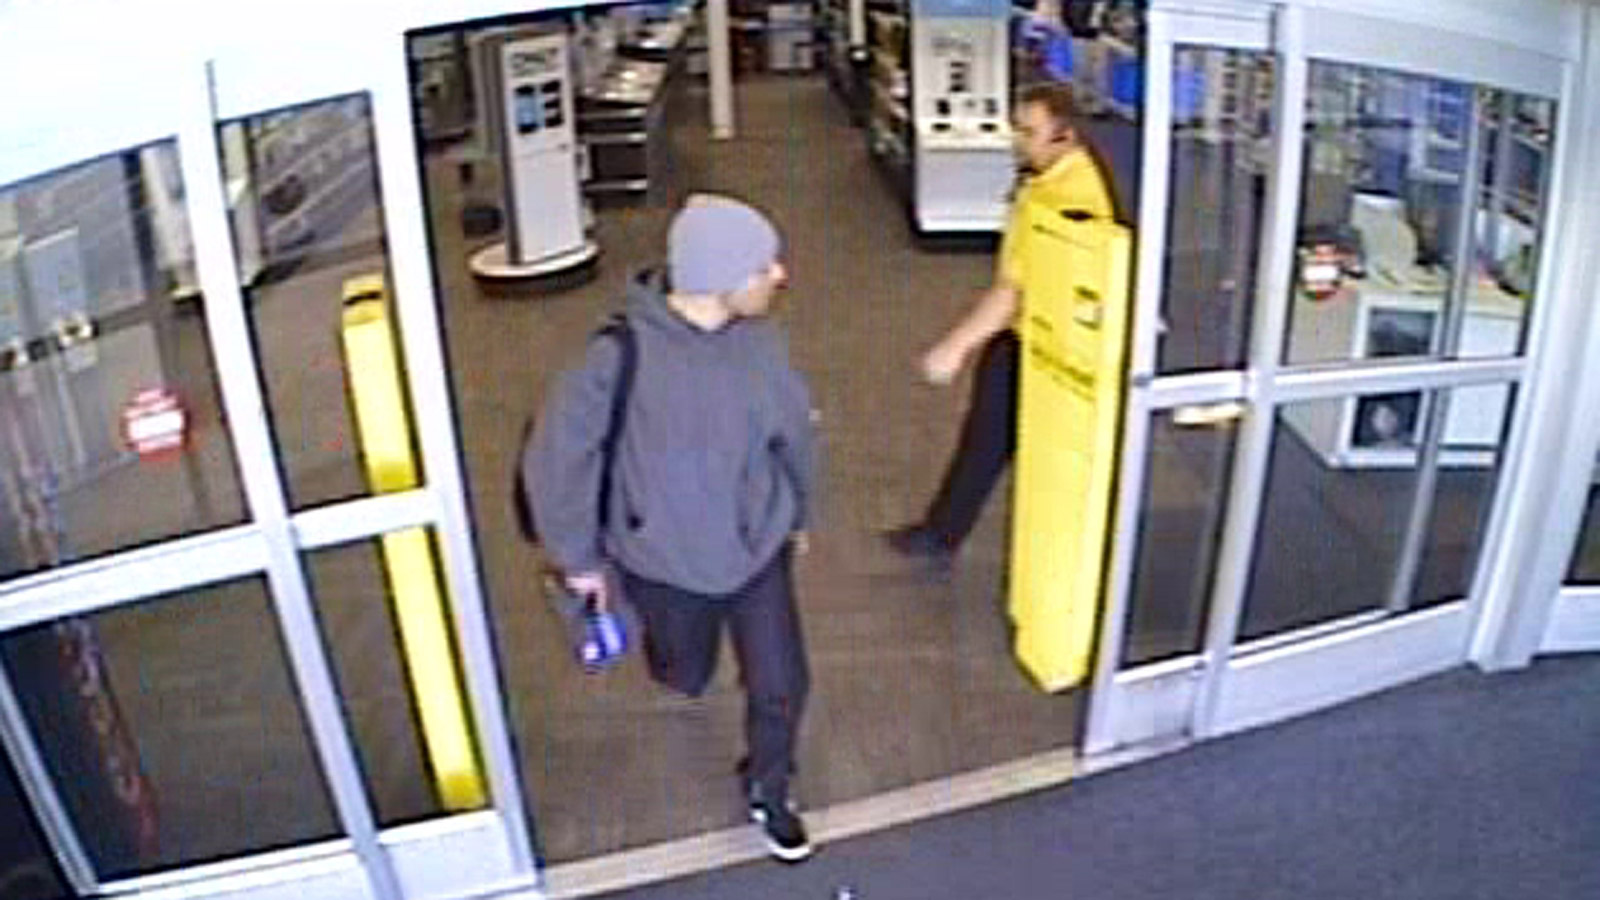 Police in Lakewood are hoping to catch this suspect who robbed a Best Buy and sprayed an employee with pepper spray (credit: Lakewood Police)